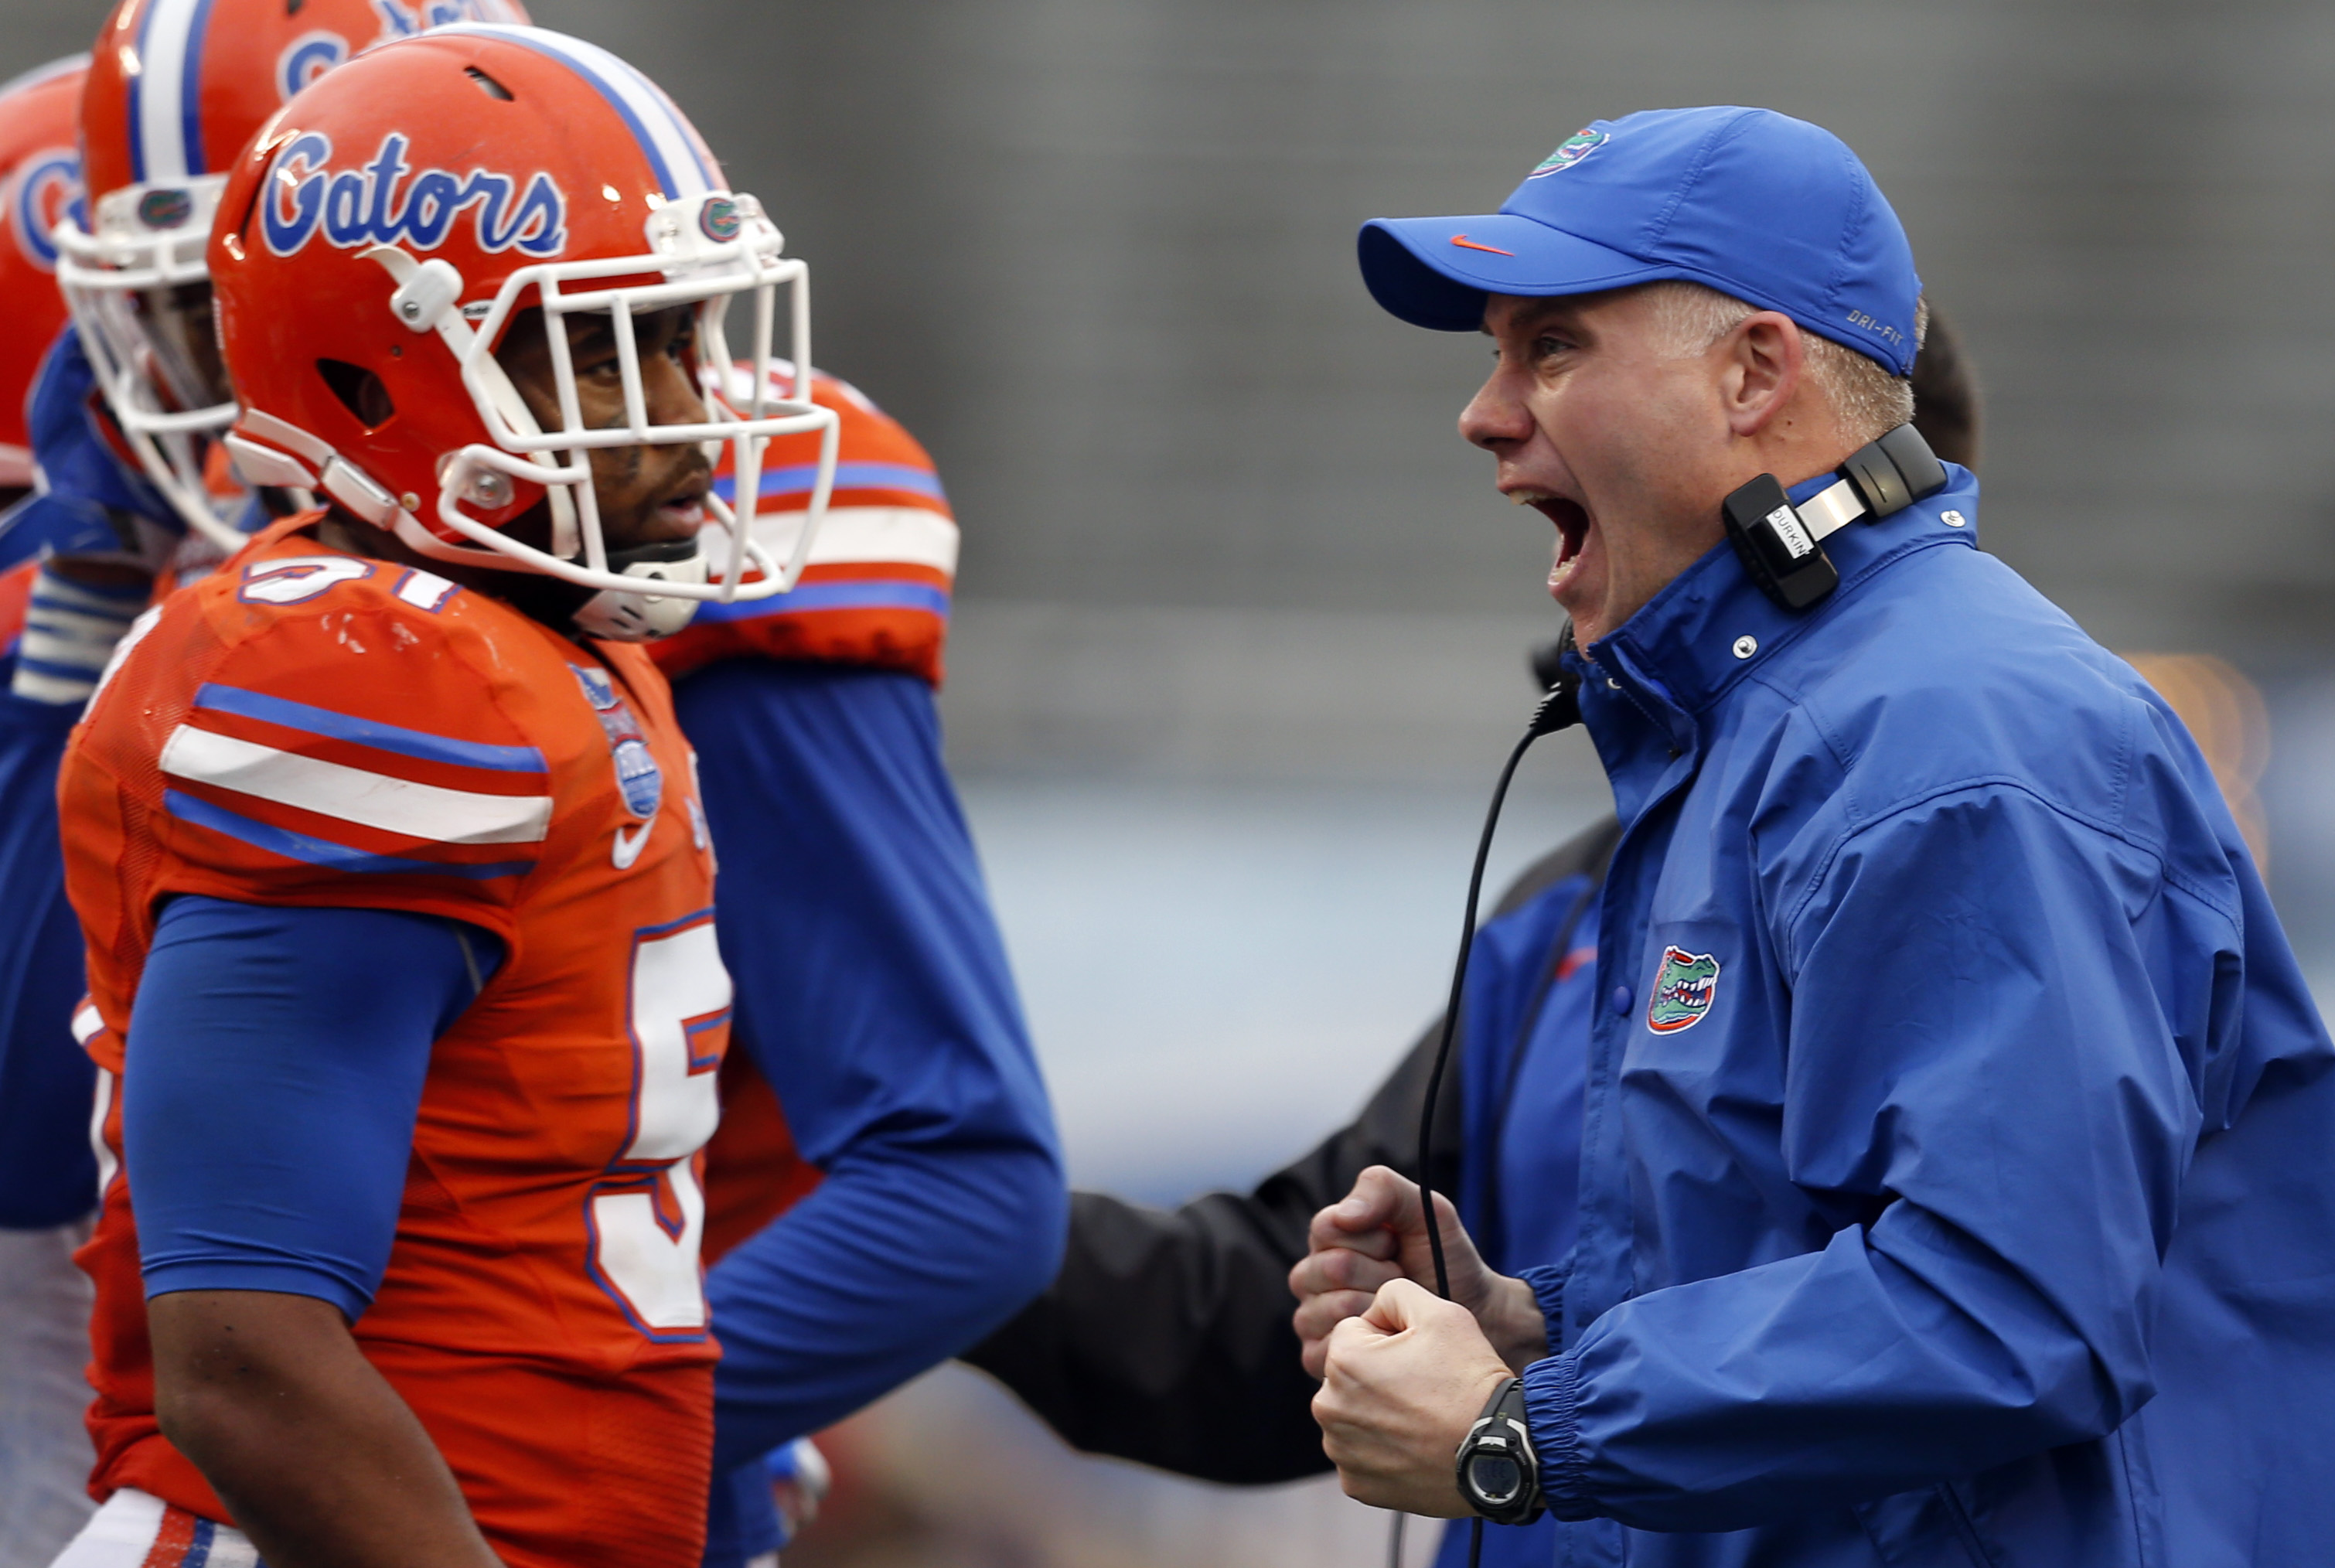 FILE - In this Jan. 3, 2015, file photo, Florida interim coach D.J. Durkin reacts after a defensive stop against East Carolina during the second half of the Birmingham Bowl NCAA college football game in Birmingham, Ala. Maryland has hired Durkin, who was